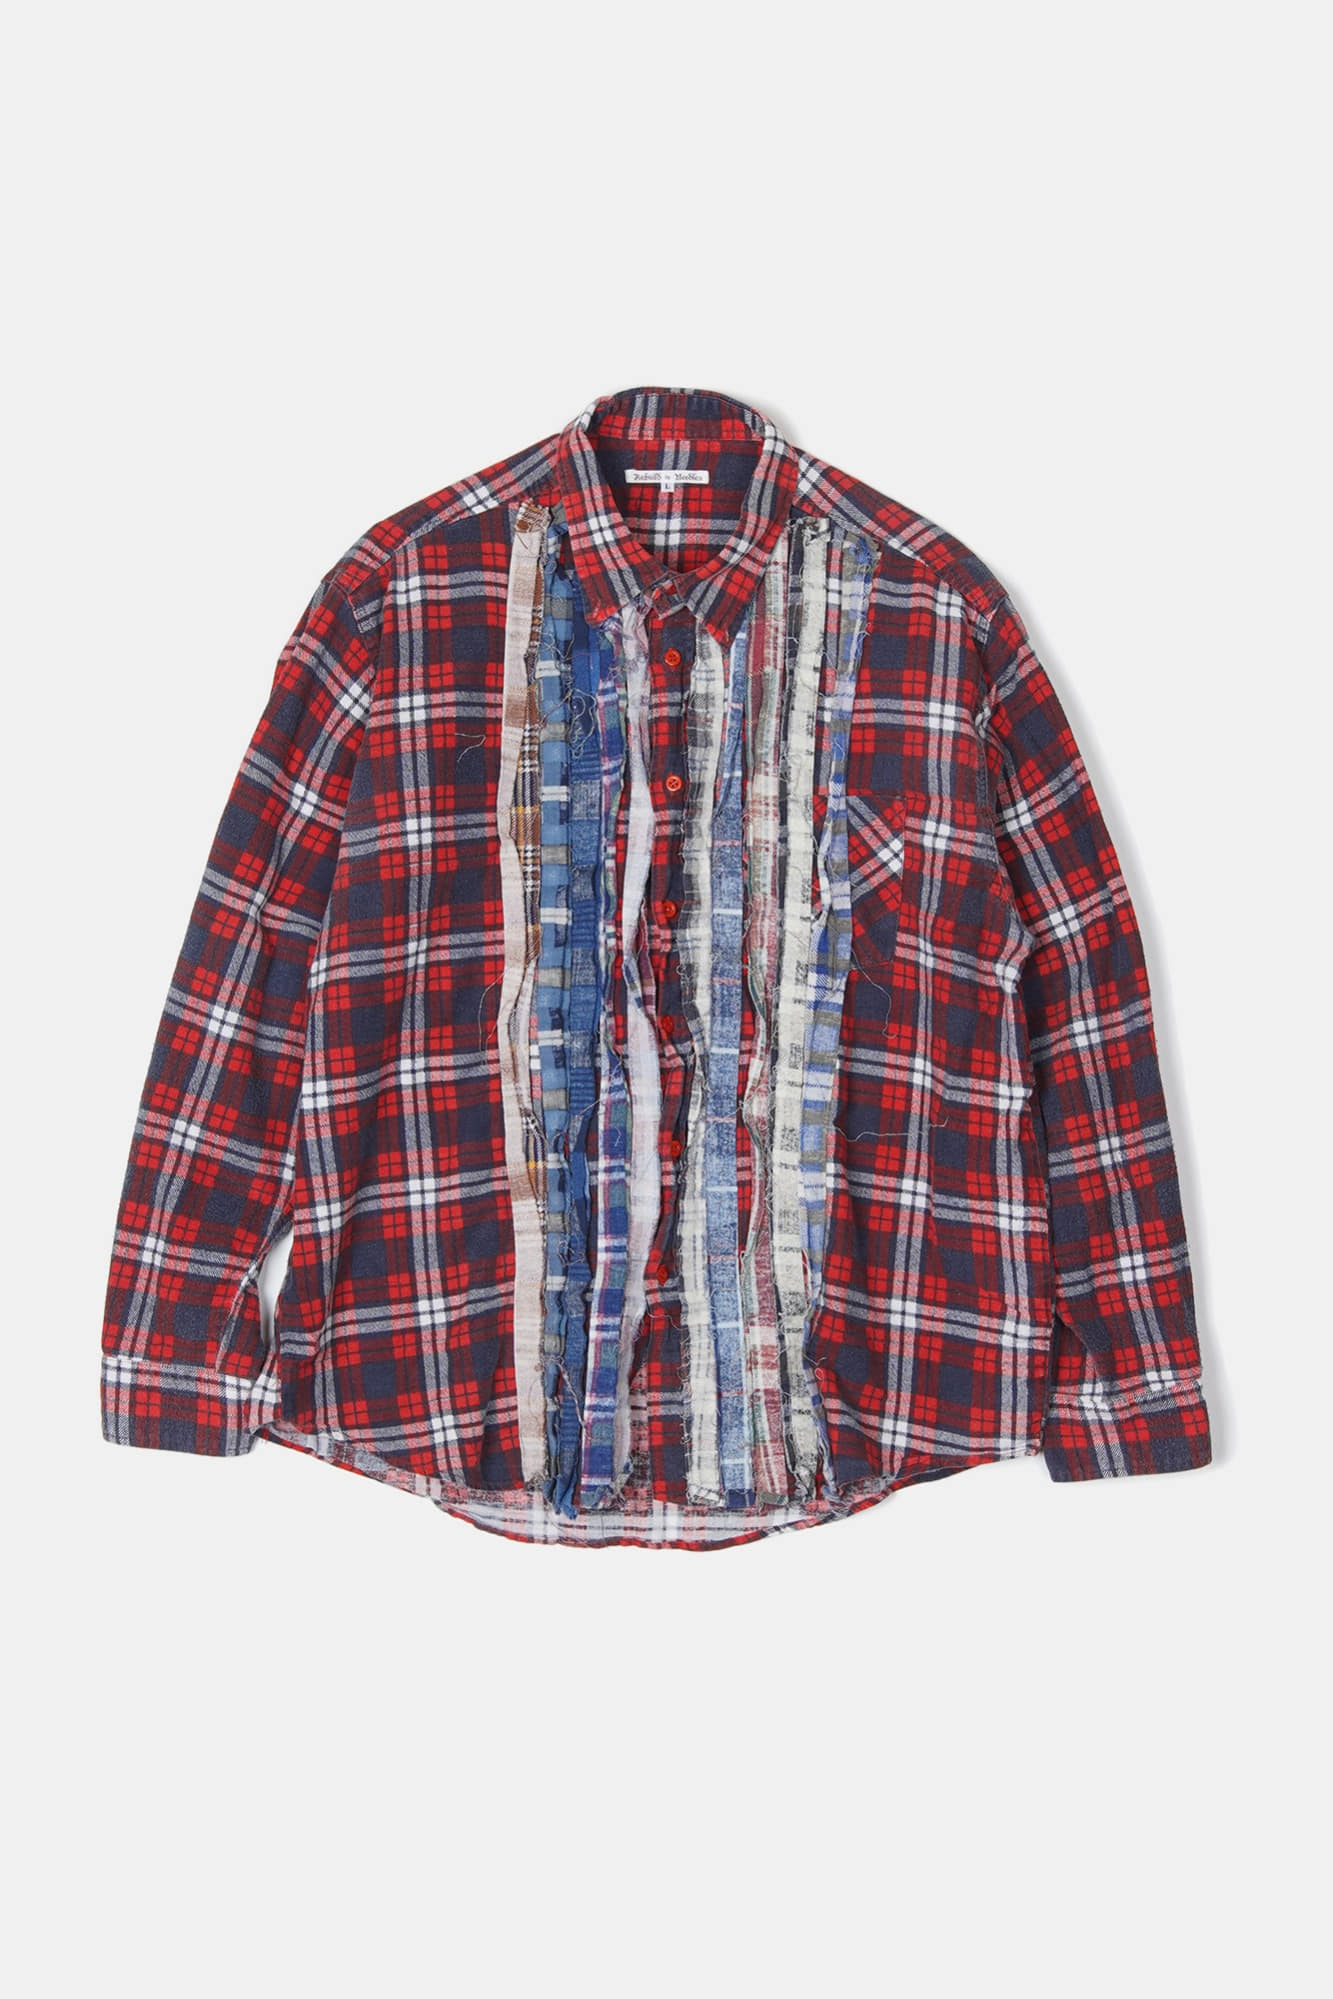 REBUILD BY NEEDLES Flannel Ribbon Shirt 3